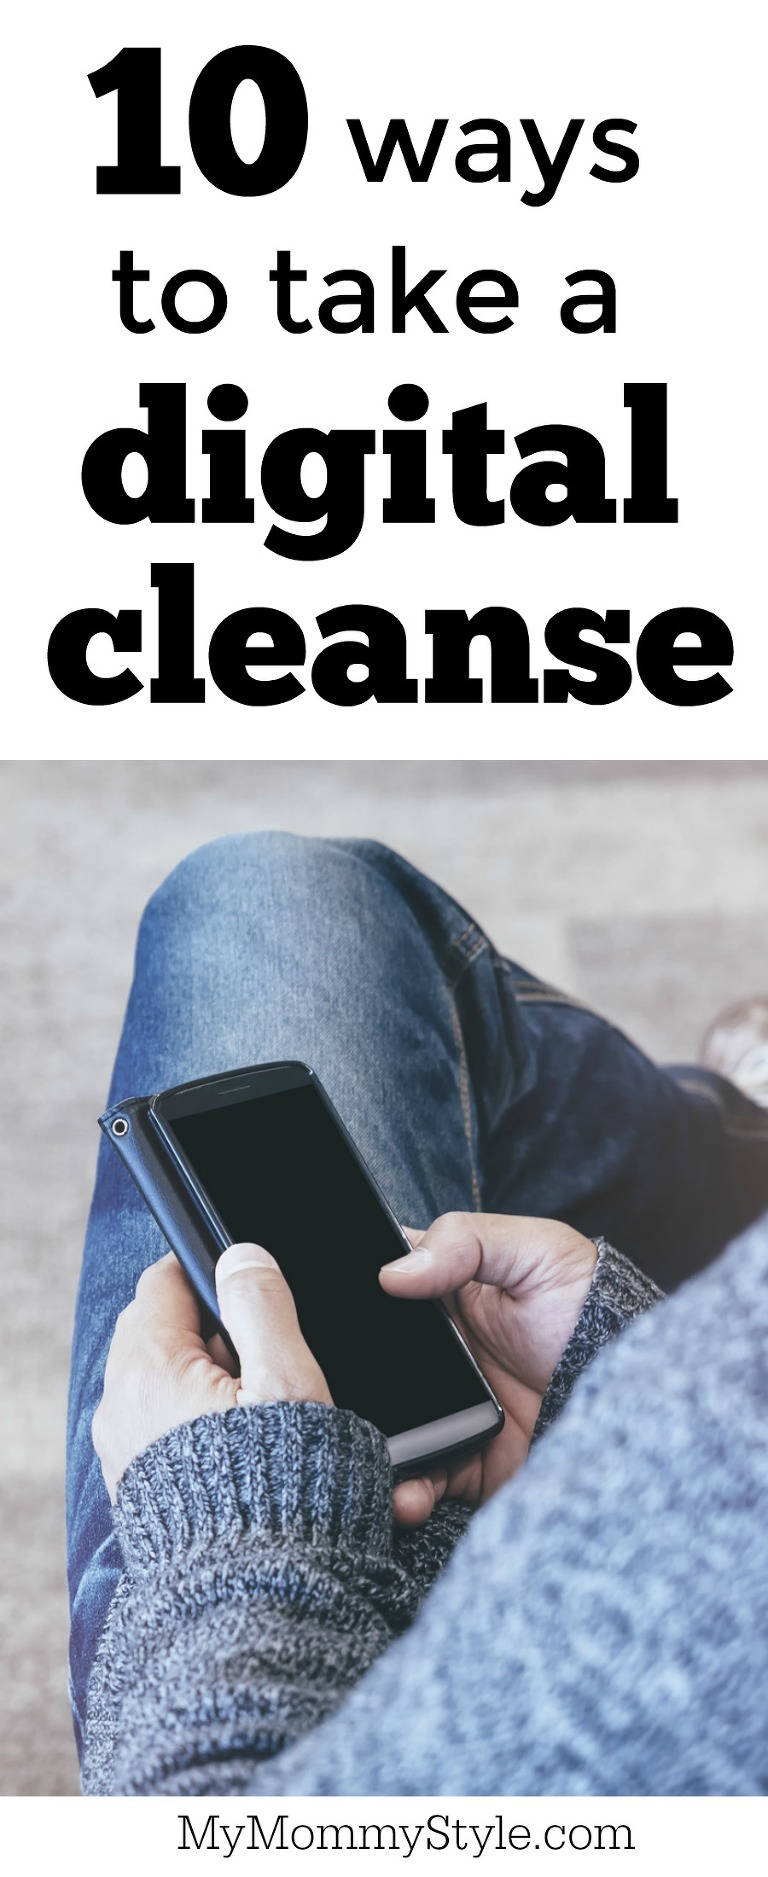 10-ways-to-take-a-digital-cleanse